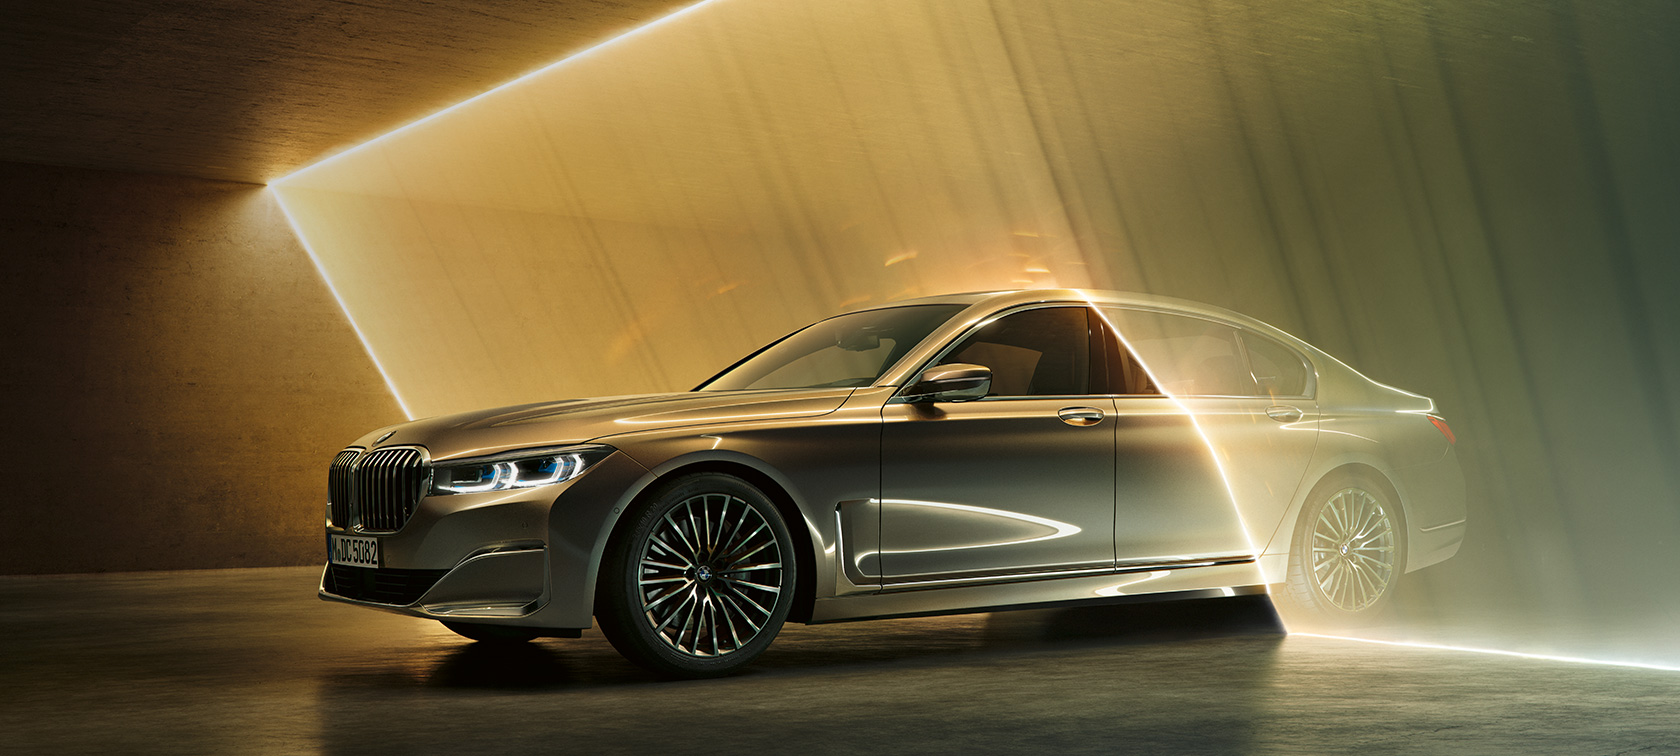 Series Sedan >> Bmw 7 Series The Sedan Of The Luxury Class Bmw Co Id